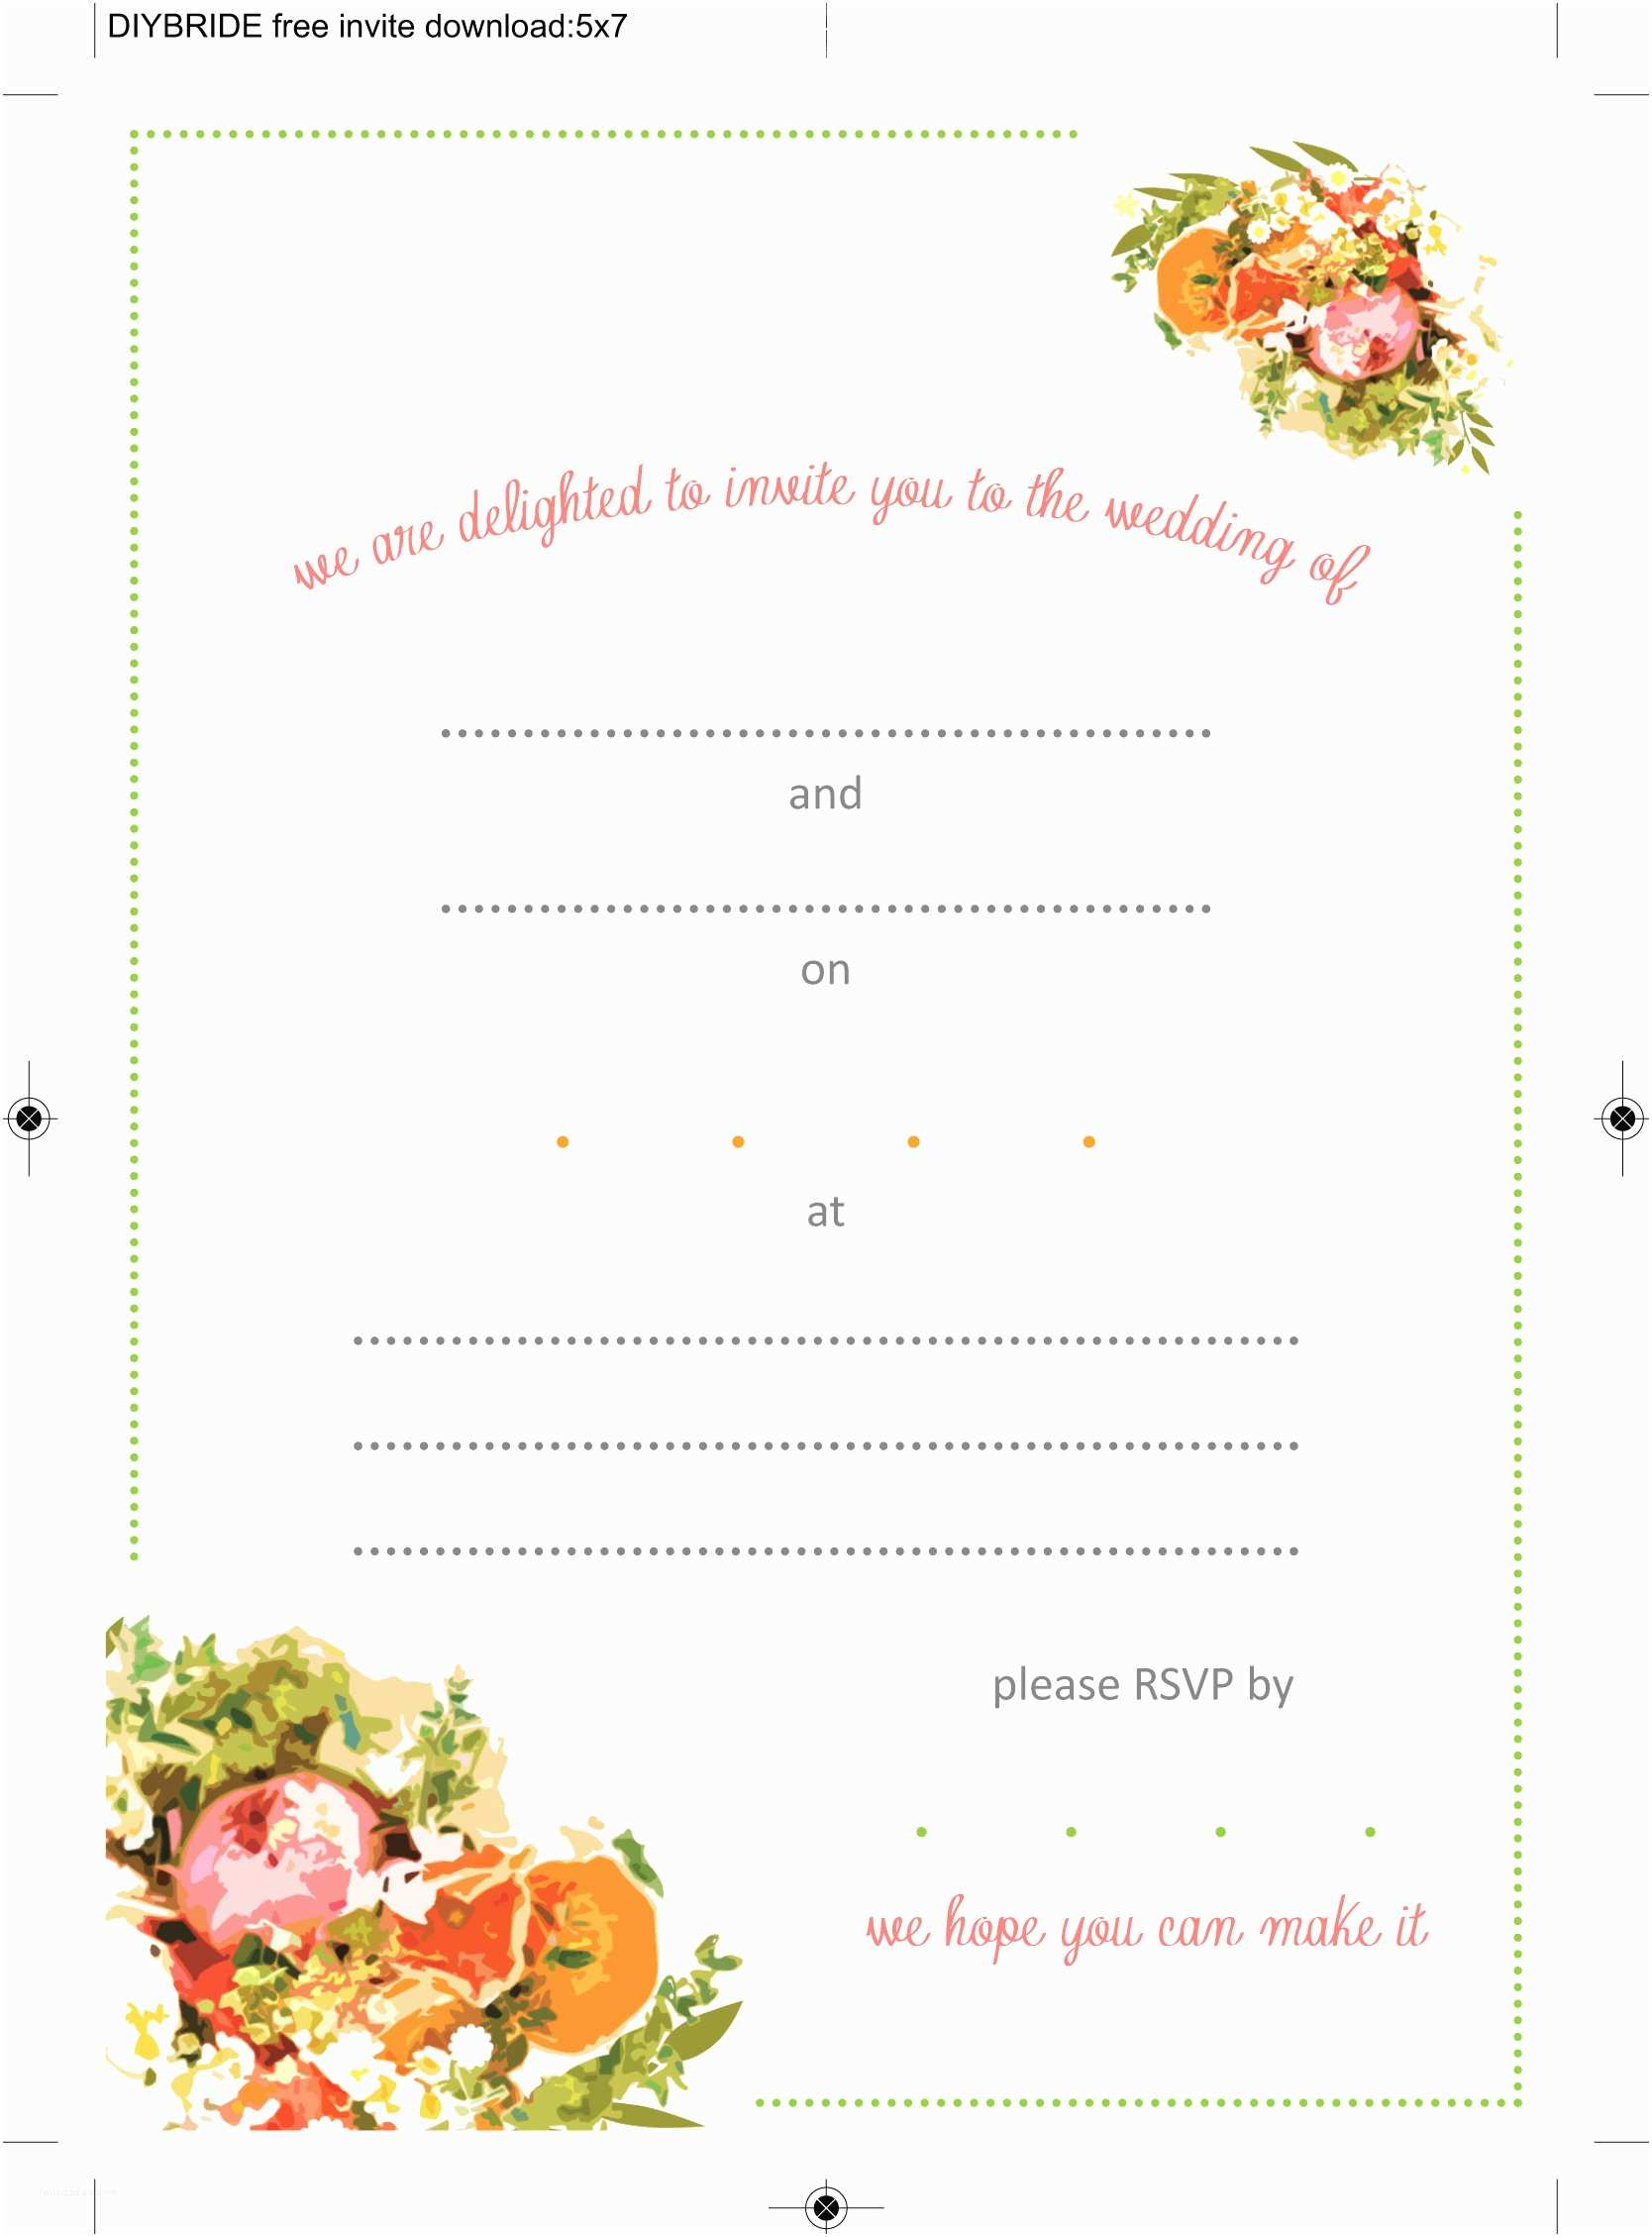 Free Email Wedding Invitation Templates Wedding Invitation Templates that are Cute and Easy to